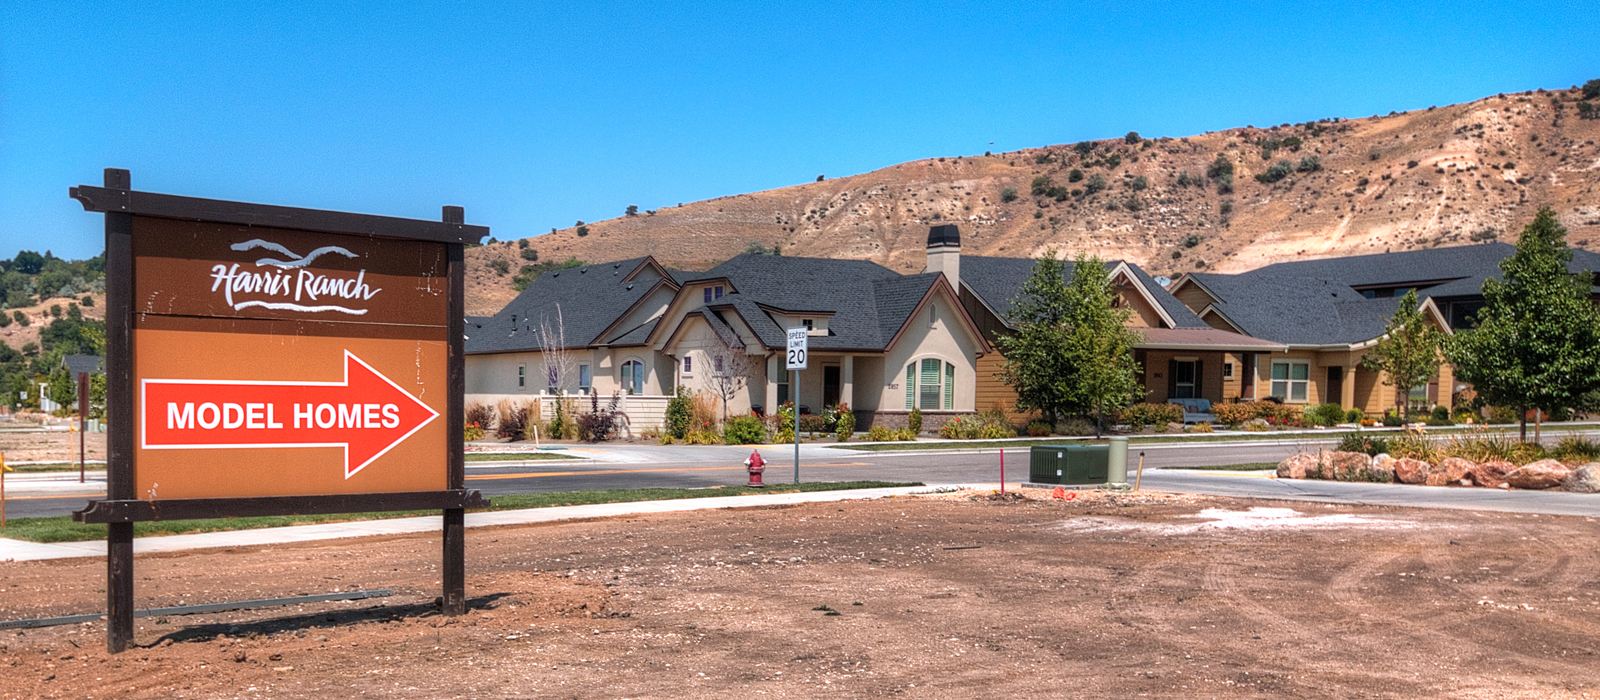 harris ranch homes for sale search in boise idaho